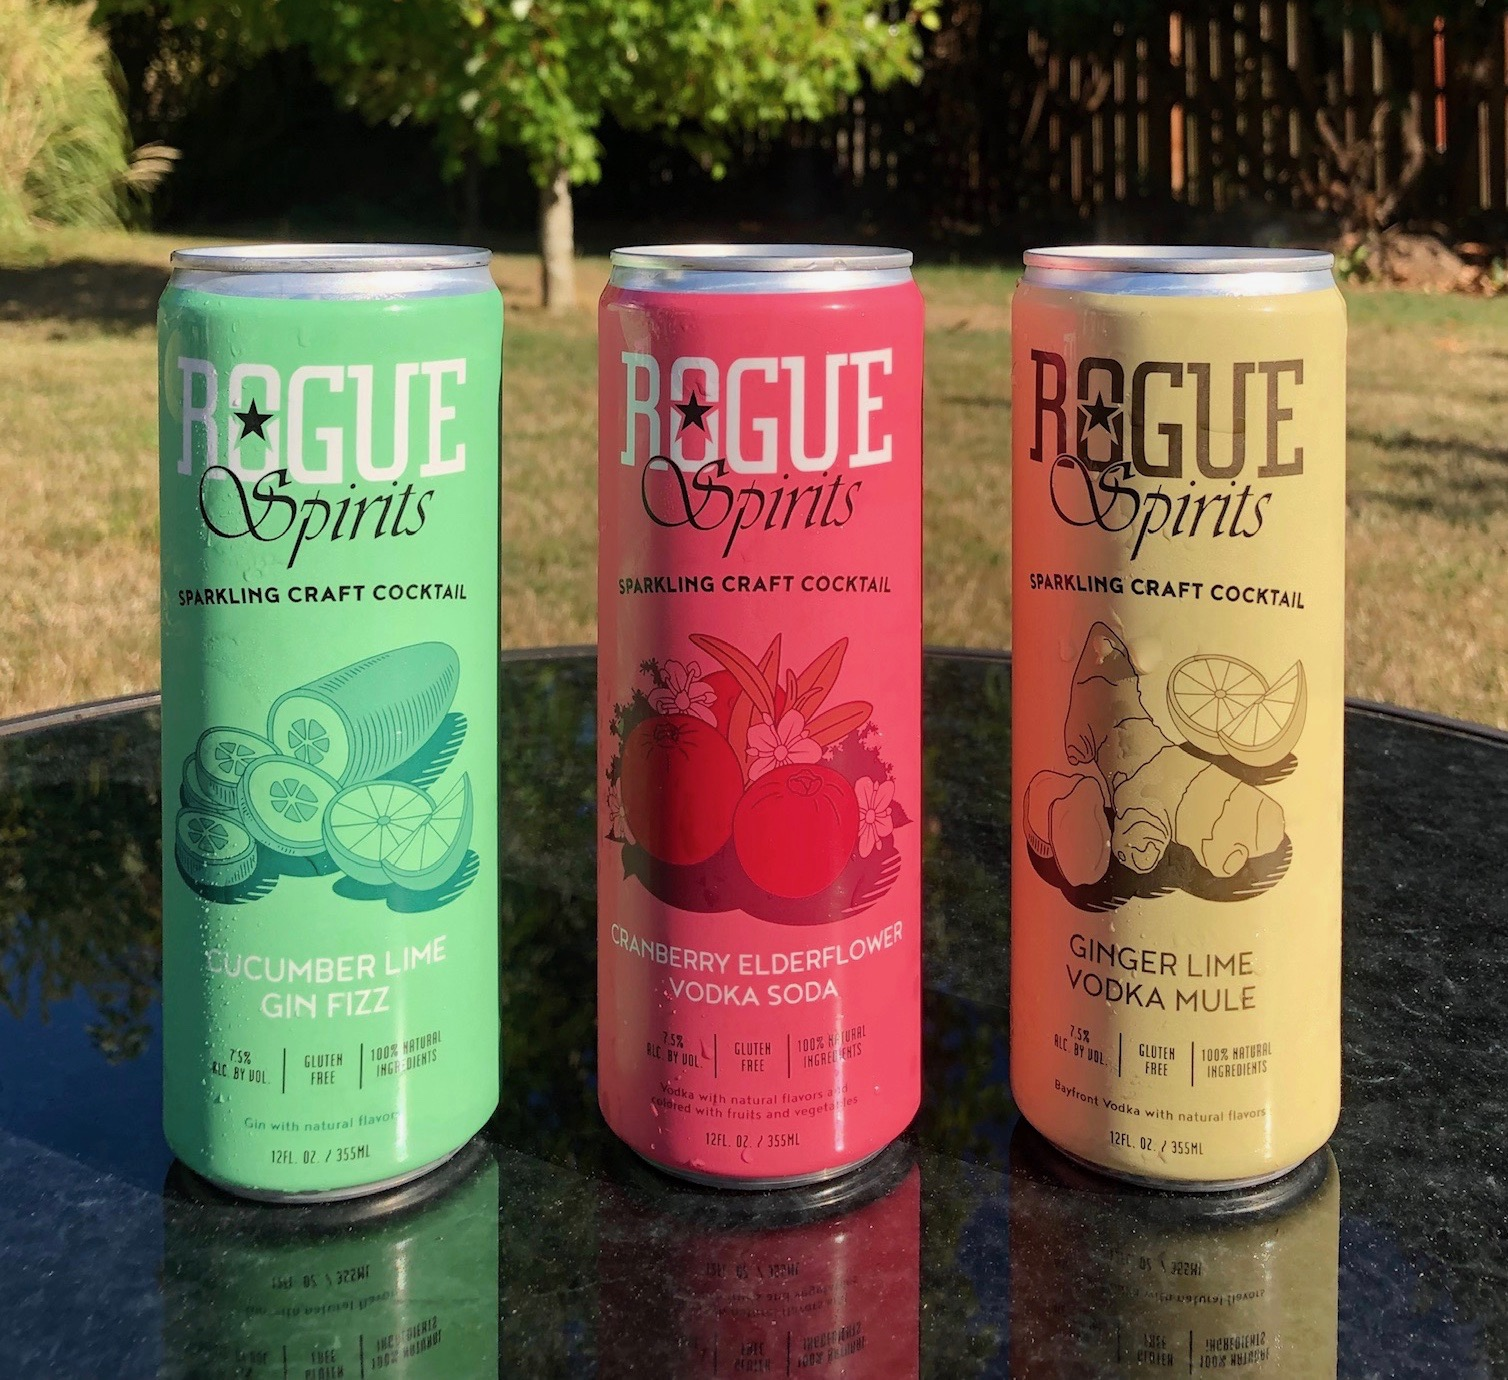 New Rogue Canned Cocktails of Cucumber Lime Gin Fizz, Cranberry Elderflower Vodka Soda, and Ginger Lime Vodka Mule. (photo by Cat Stelzer)